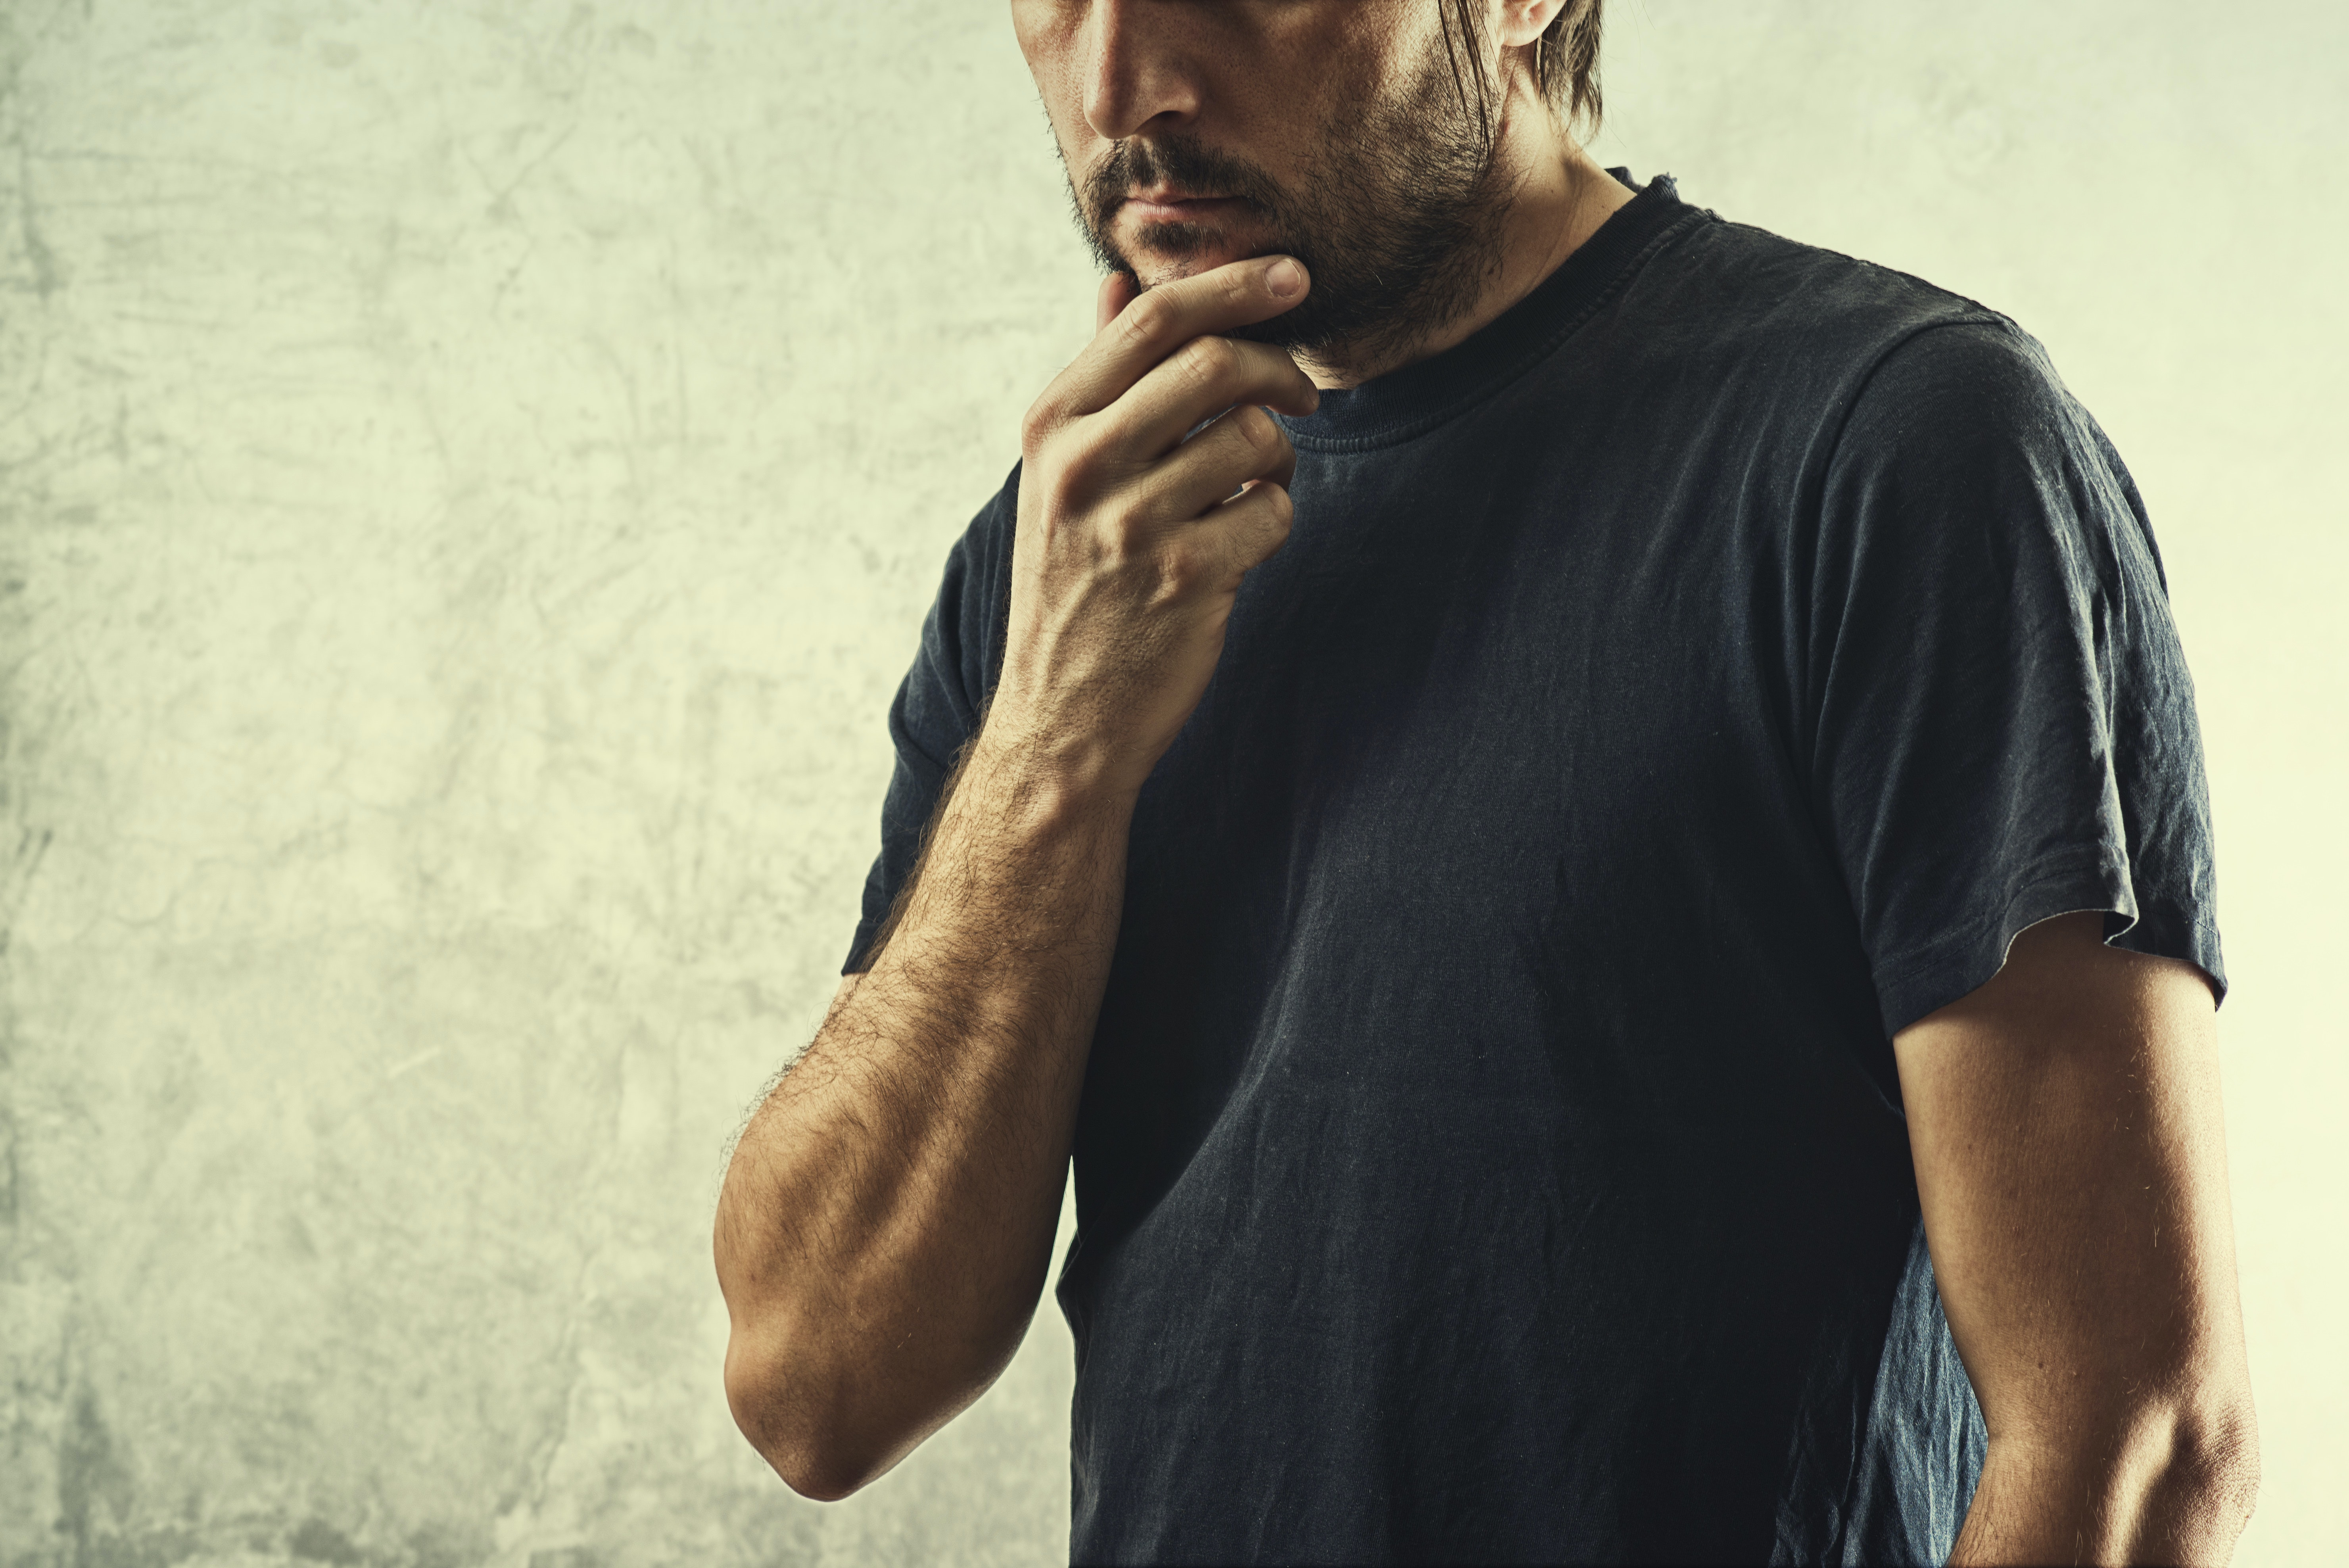 An image depicting a person suffering from amnesia symptoms